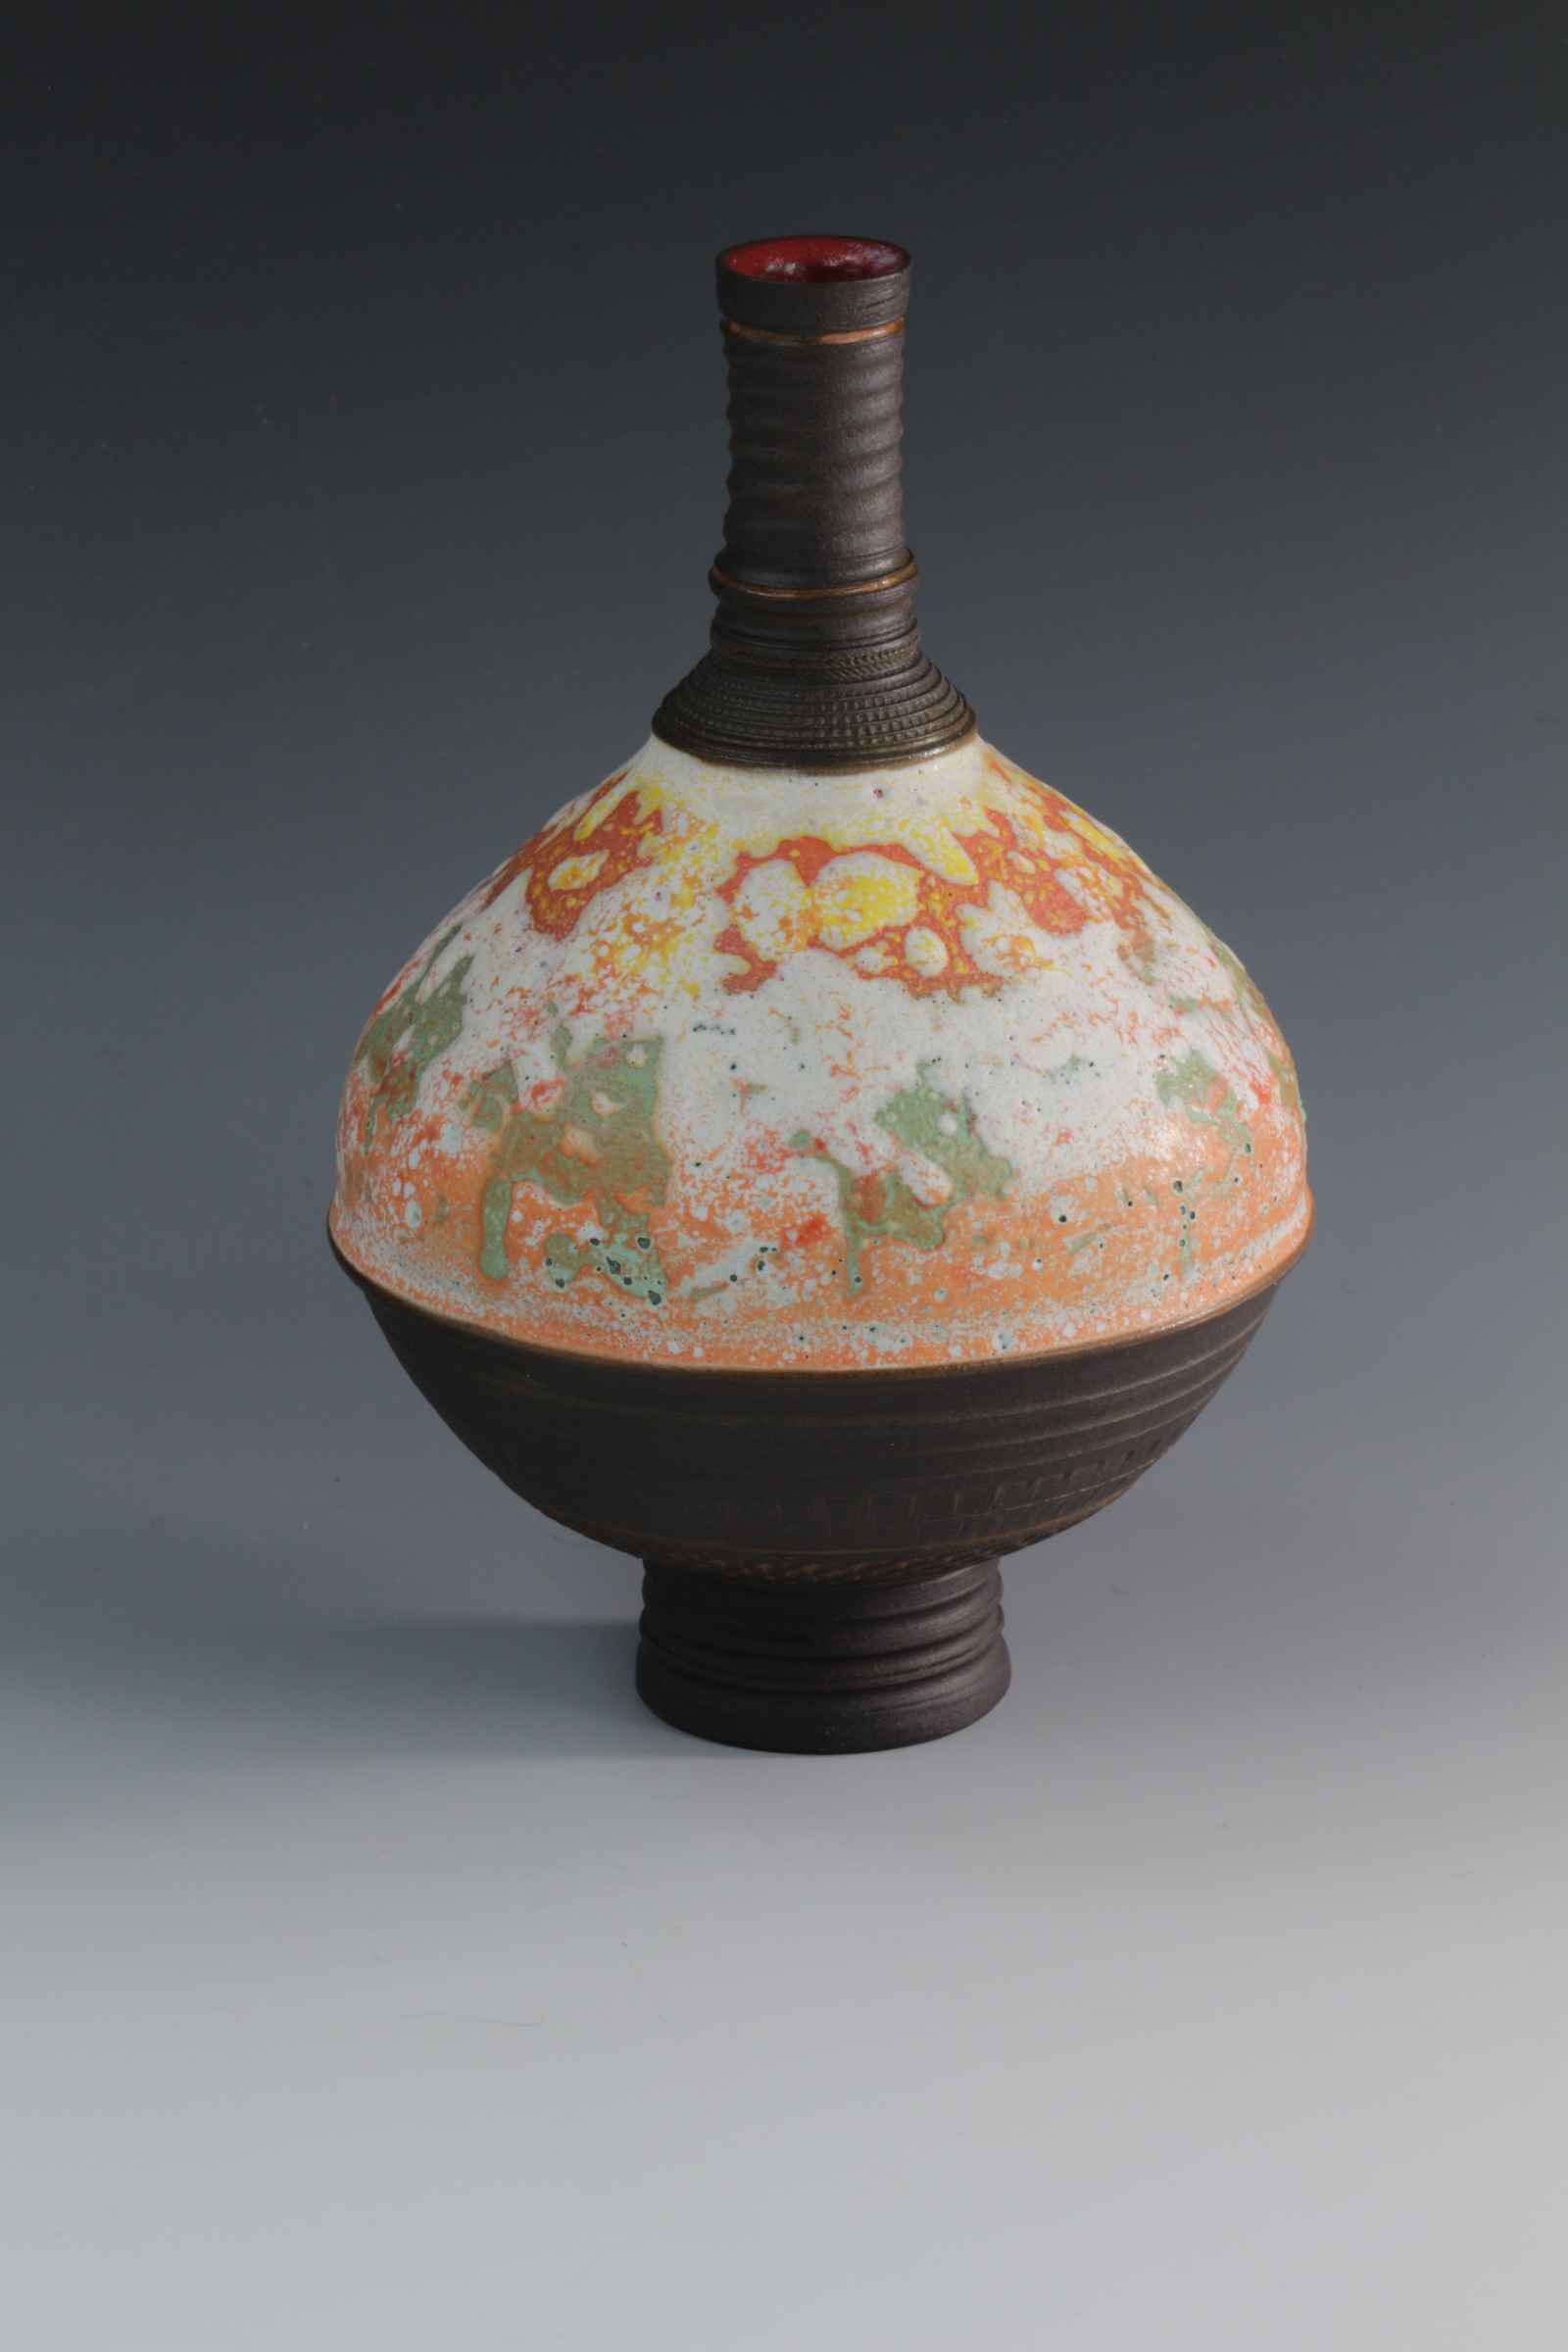 "<span class=""link fancybox-details-link""><a href=""/artists/61-geoffrey-swindell/works/6904-geoffrey-swindell-bud-vase-2020/"">View Detail Page</a></span><div class=""artist""><strong>Geoffrey Swindell</strong></div> <div class=""title""><em>Bud Vase</em>, 2020</div> <div class=""signed_and_dated"">impressed artist's seal to base</div> <div class=""medium"">porcelain</div><div class=""copyright_line"">Own Art: £ 17 x 10 Months, 0% APR</div>"